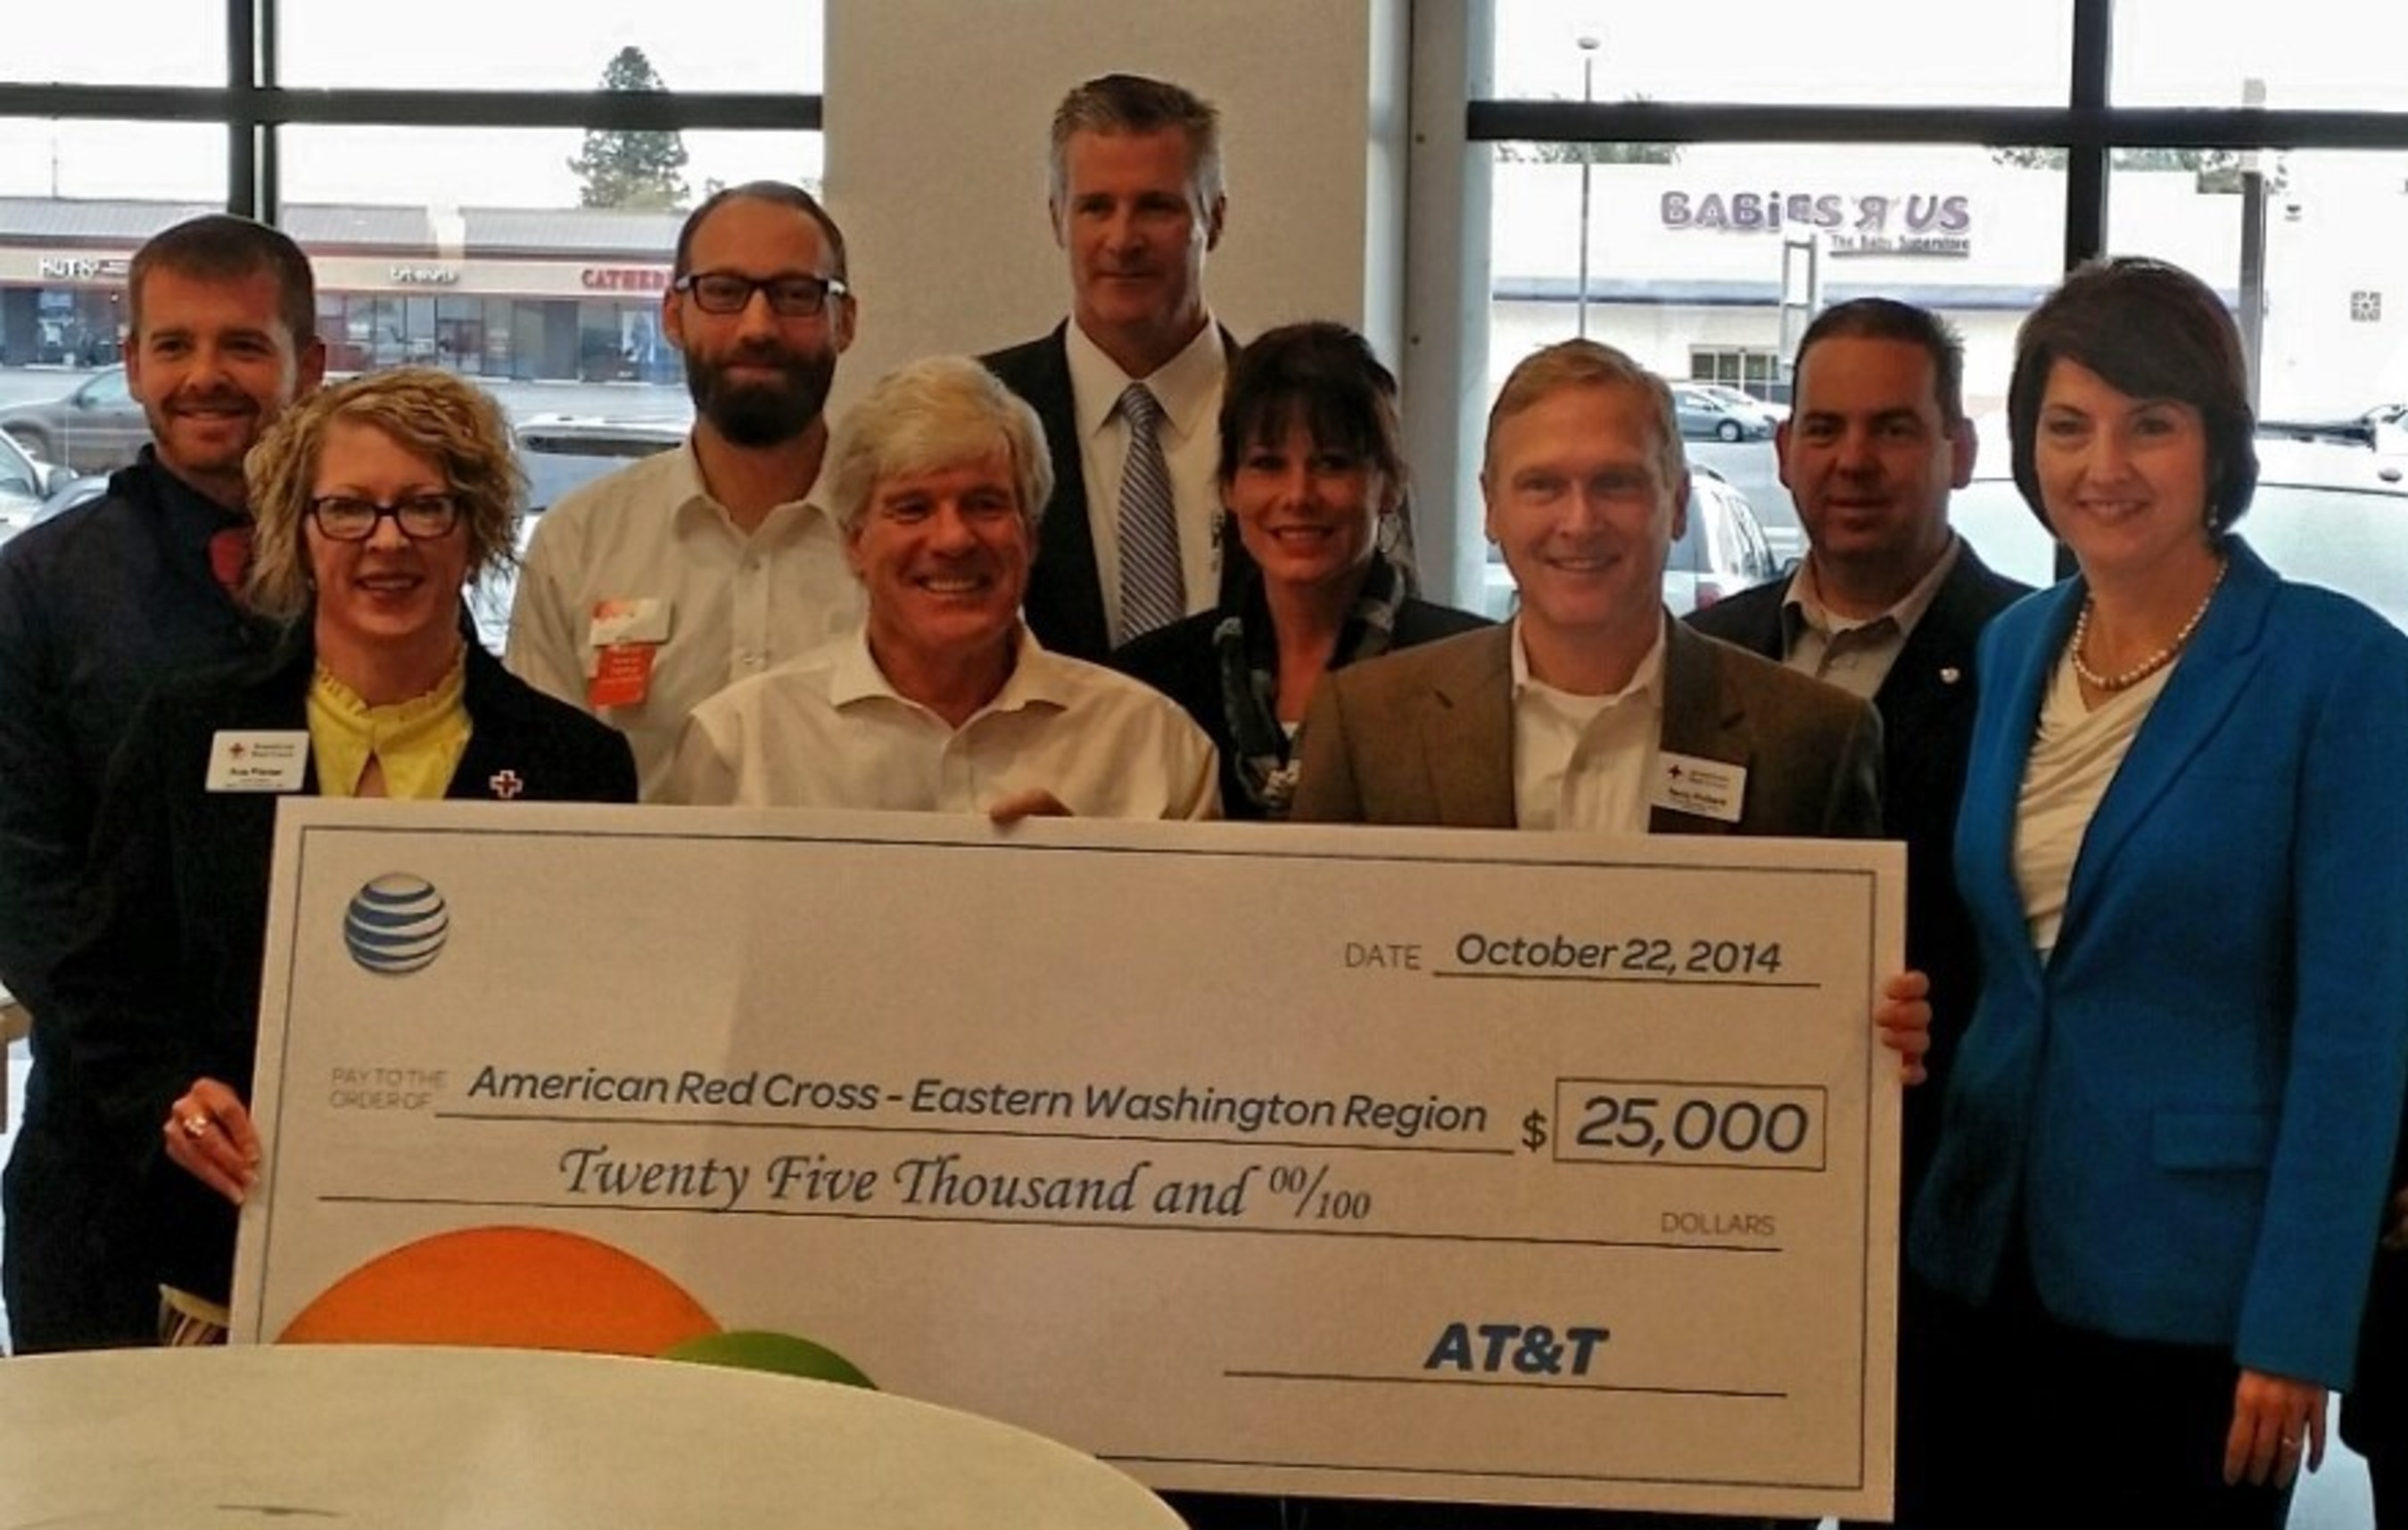 Congresswoman Cathy McMorris Rodgers (right) Joins AT&T personnel and American Red Cross representatives for innovative, new store opening in Spokane with $25,000 donation to American Red Cross Inland Northwest Region.